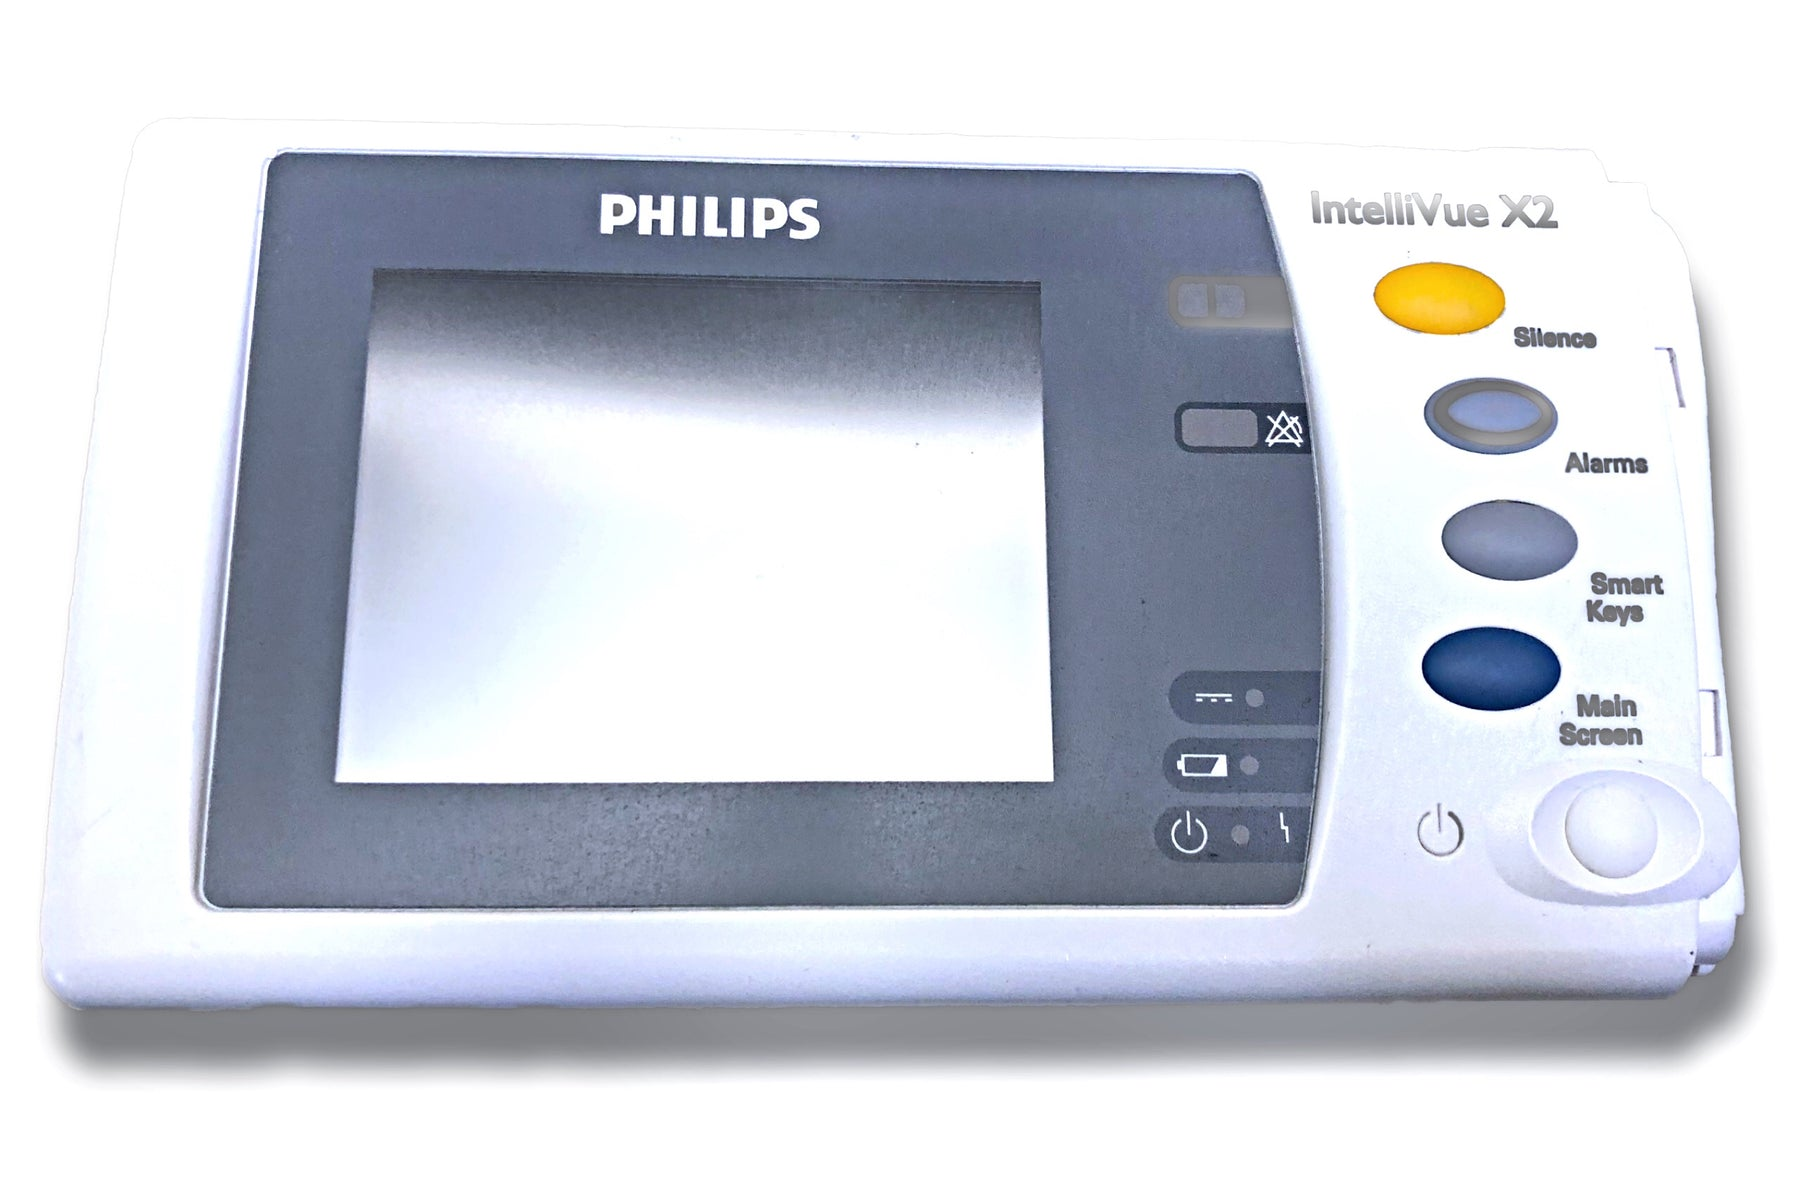 Philips Intellivue X2 / MP2 Front Display LCD Screen & Bezel Assembly - Even Biomedical